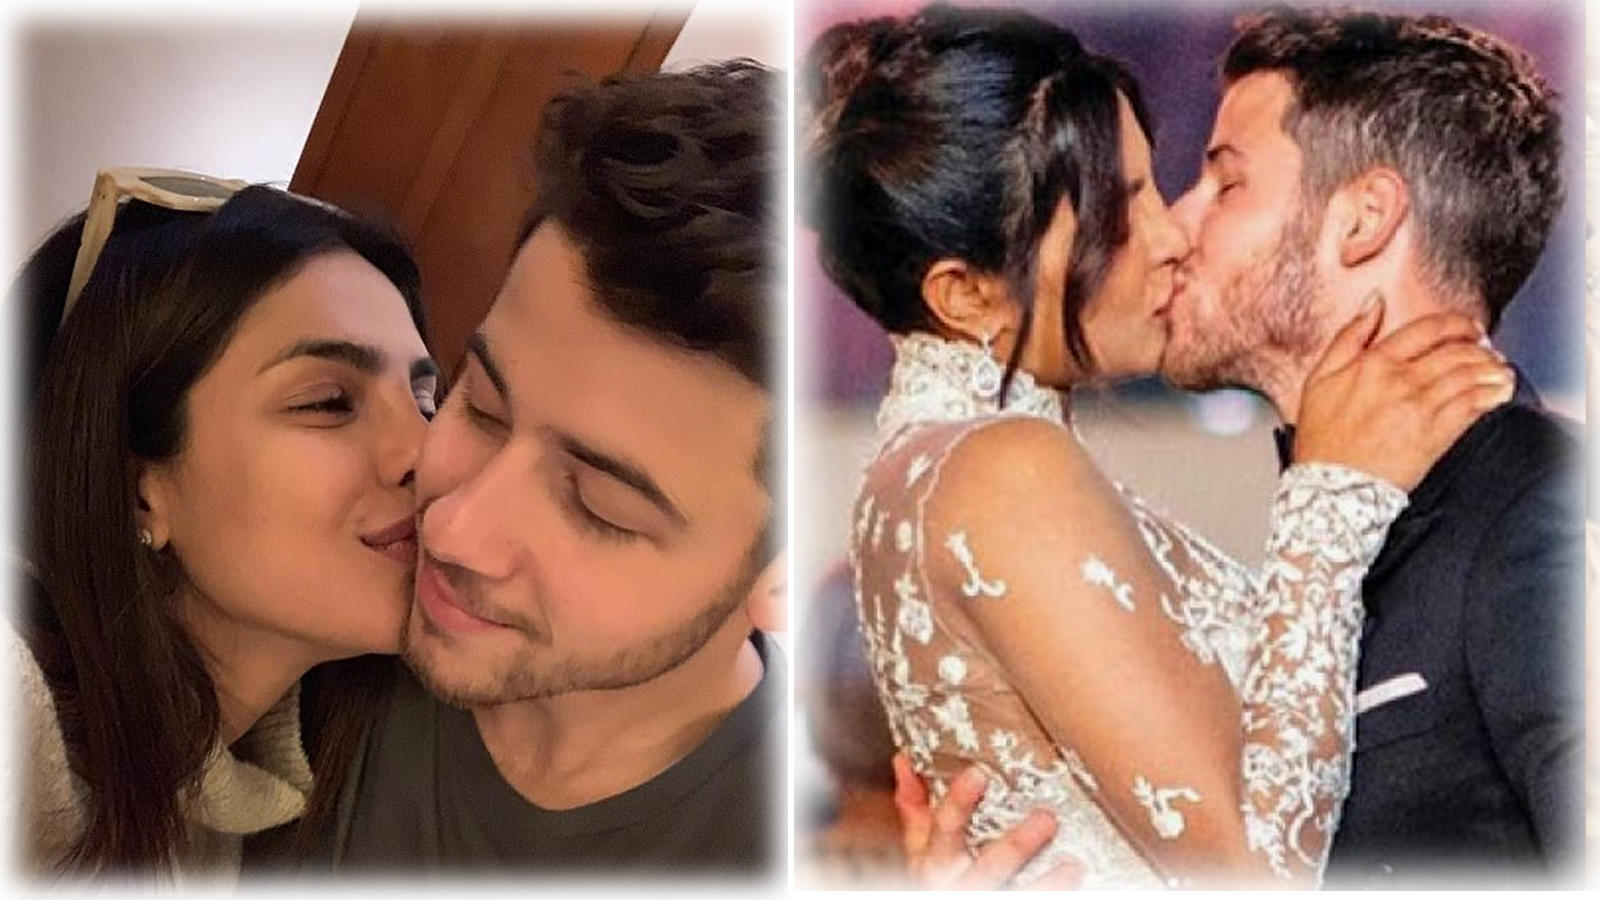 Priyanka Chopra finally opens up about getting trolled for posting PDA pictures with hubby Nick Jonas